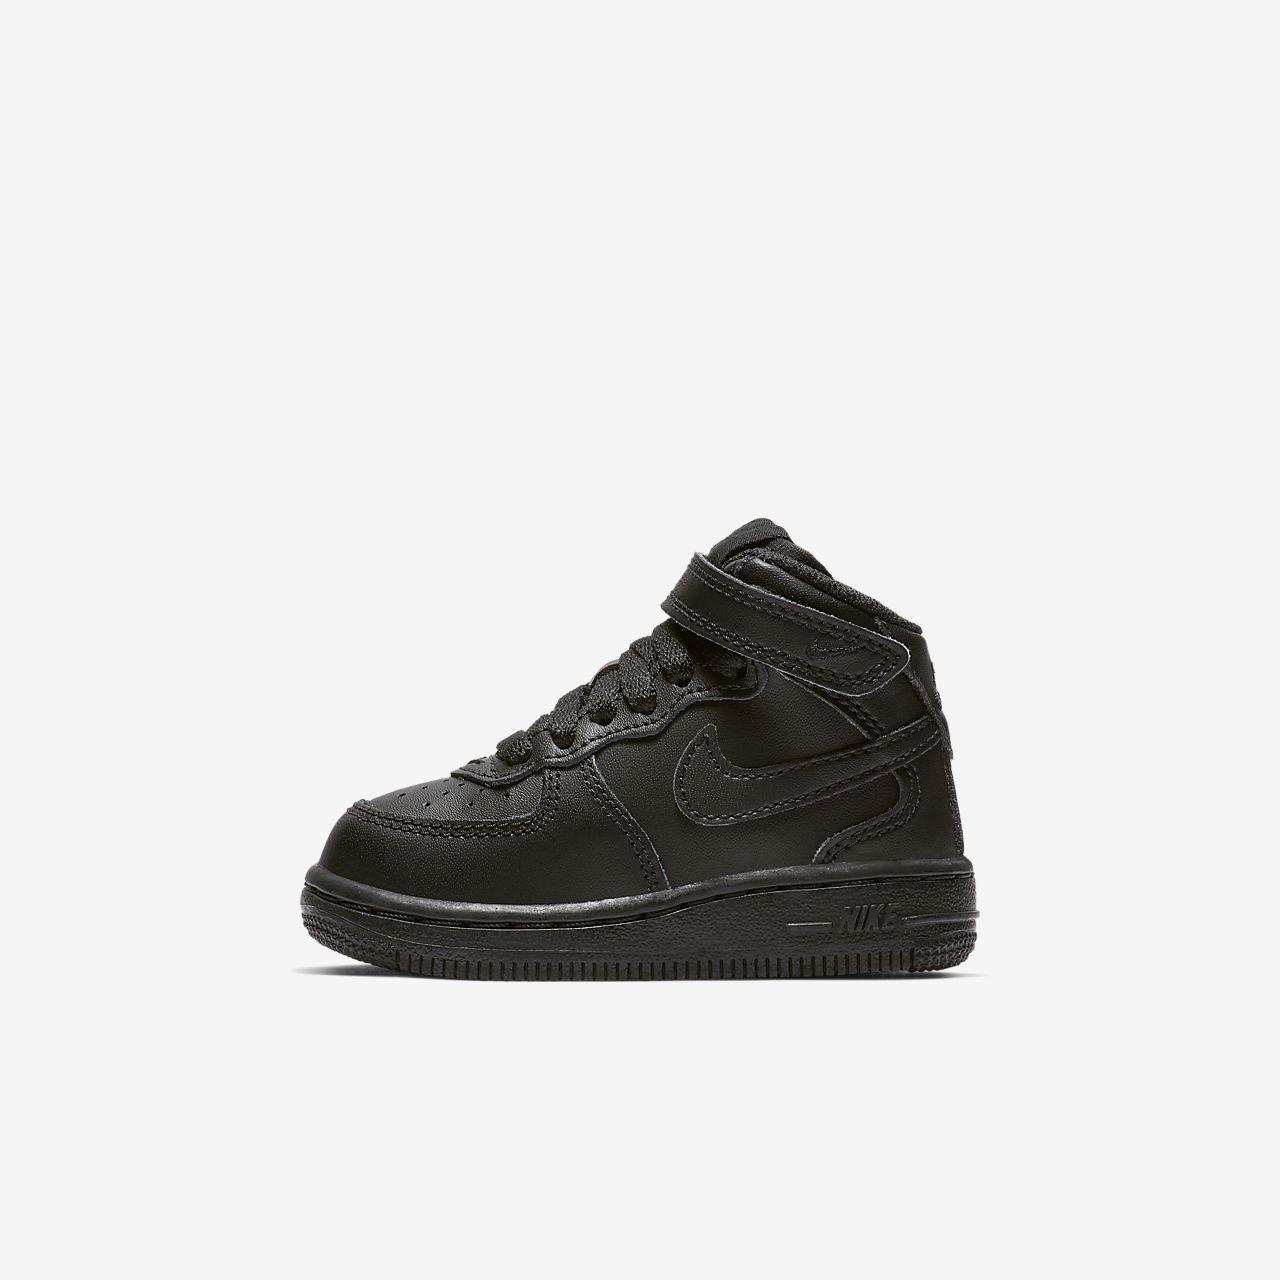 air force 1 black mid nz